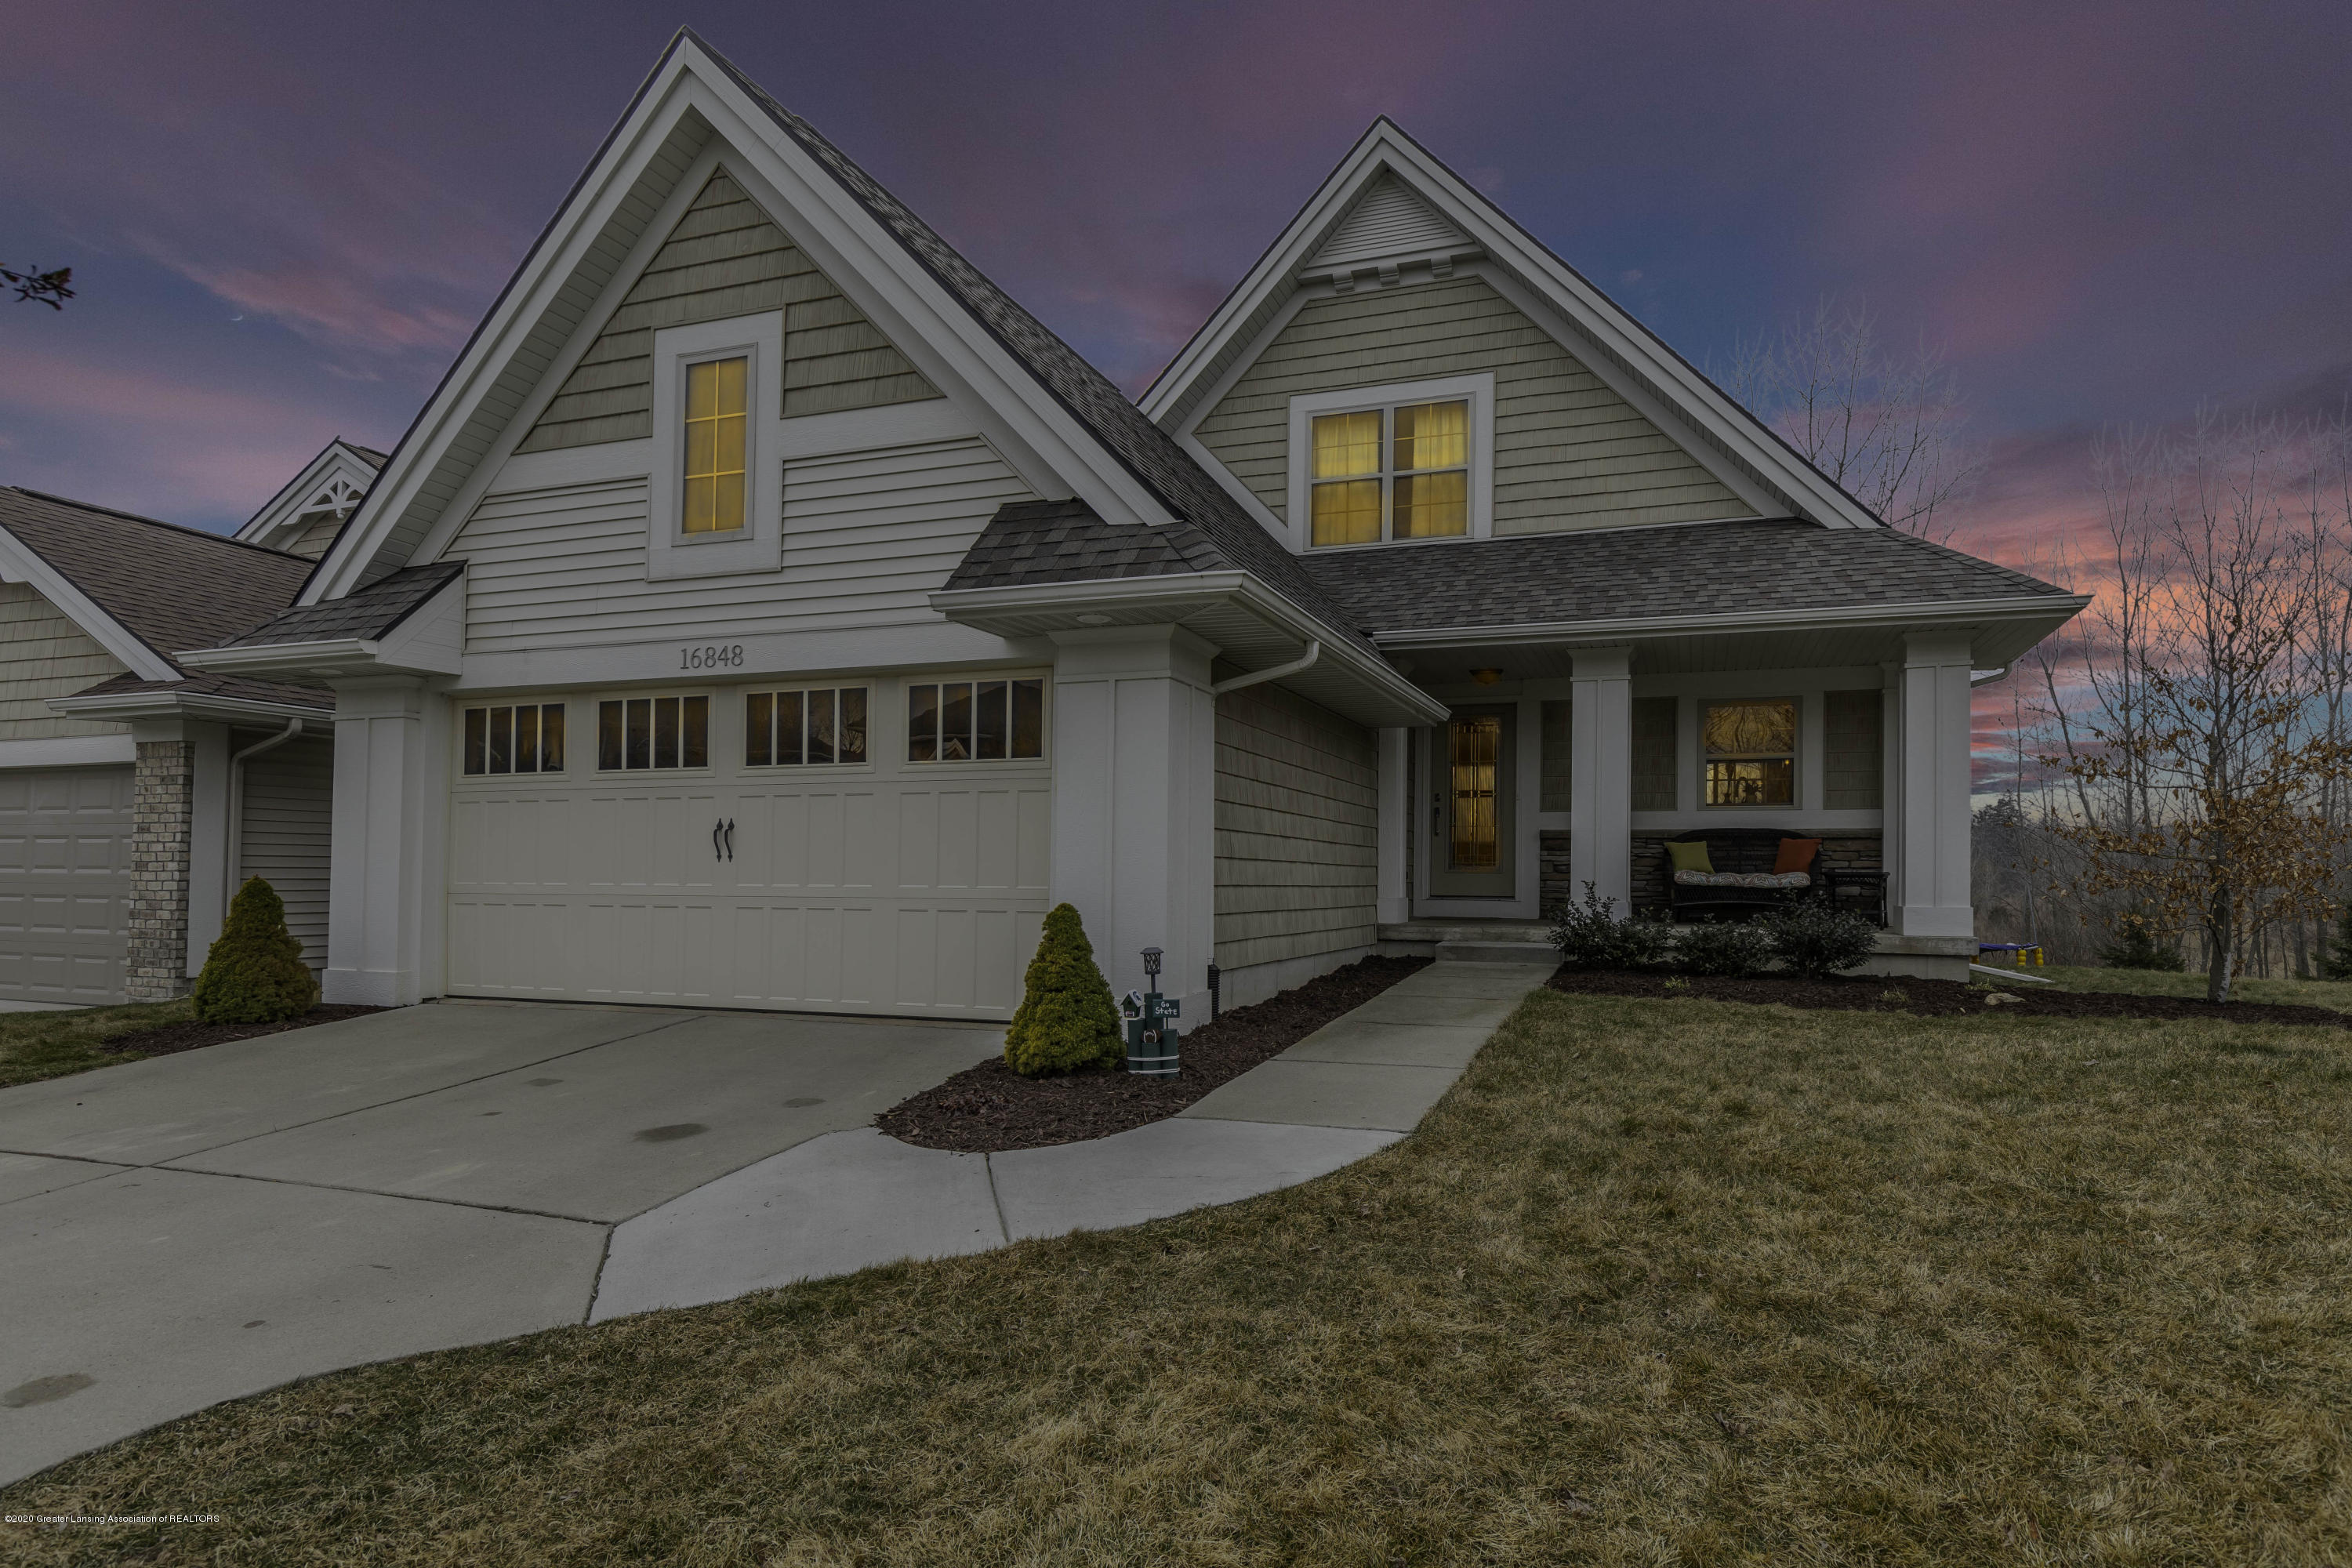 16848 Meadowbrook Dr - meadowtwiligiht - 1